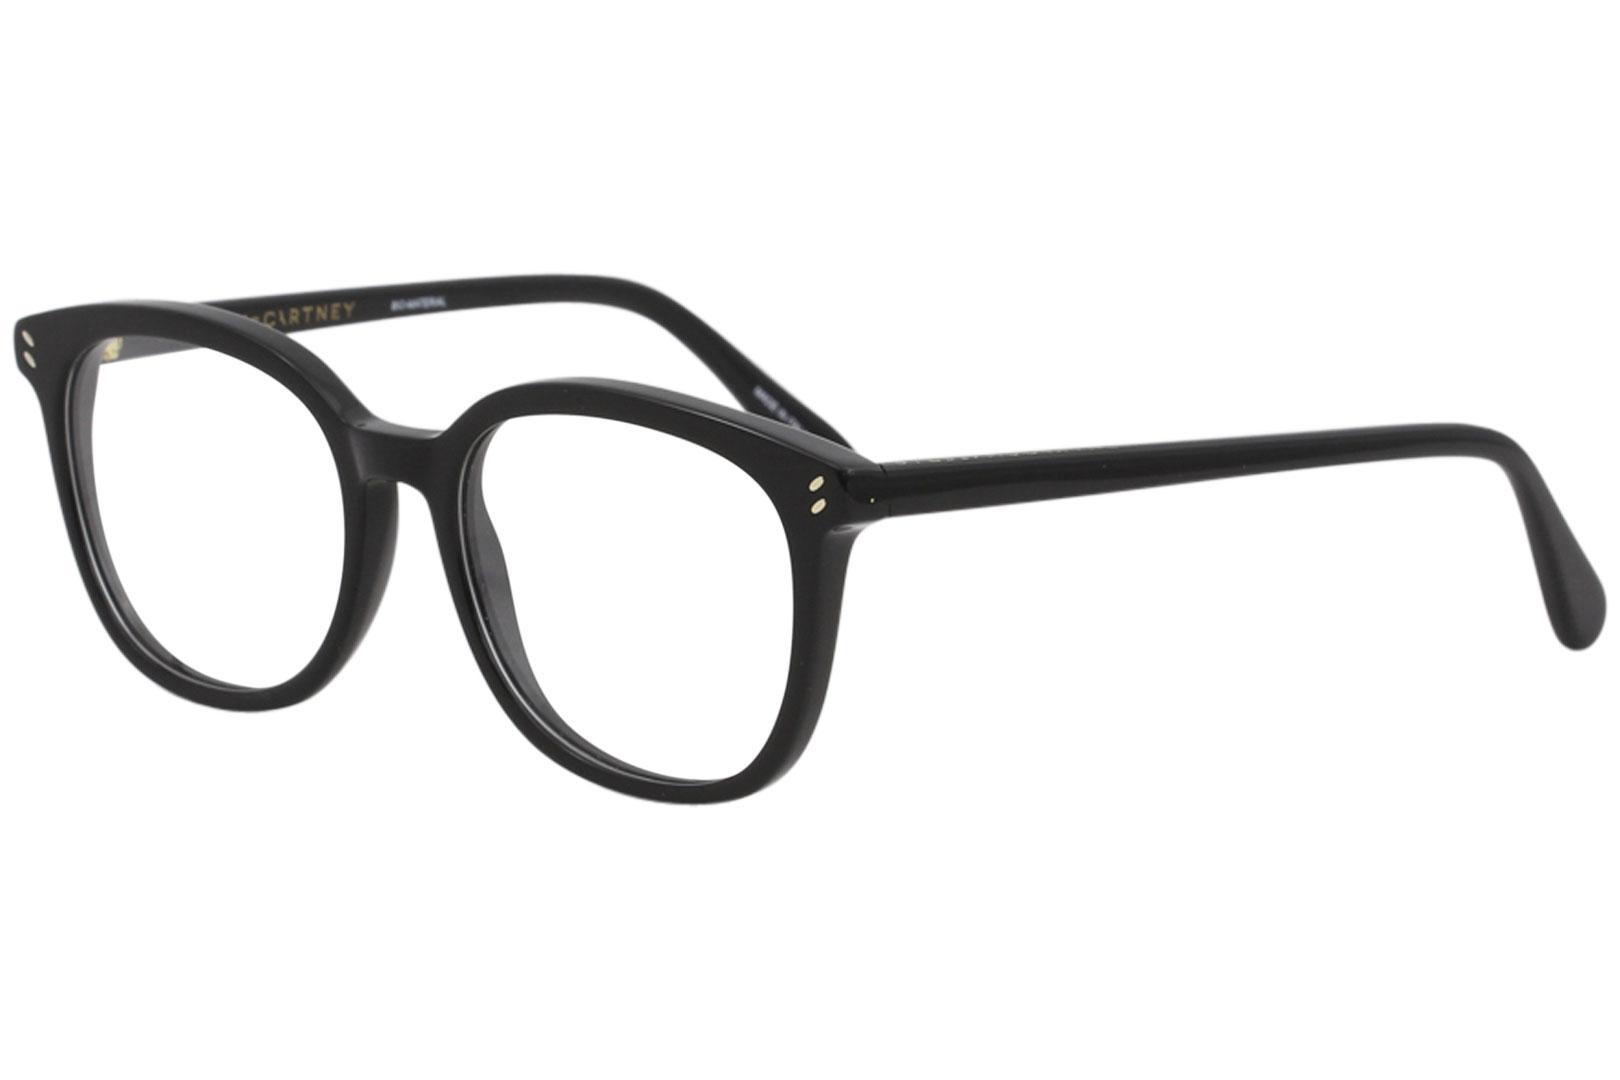 5e7805d5da Stella McCartney Women s Eyeglasses SC0080OI SC 0080 OI Full Rim Optical  Frame